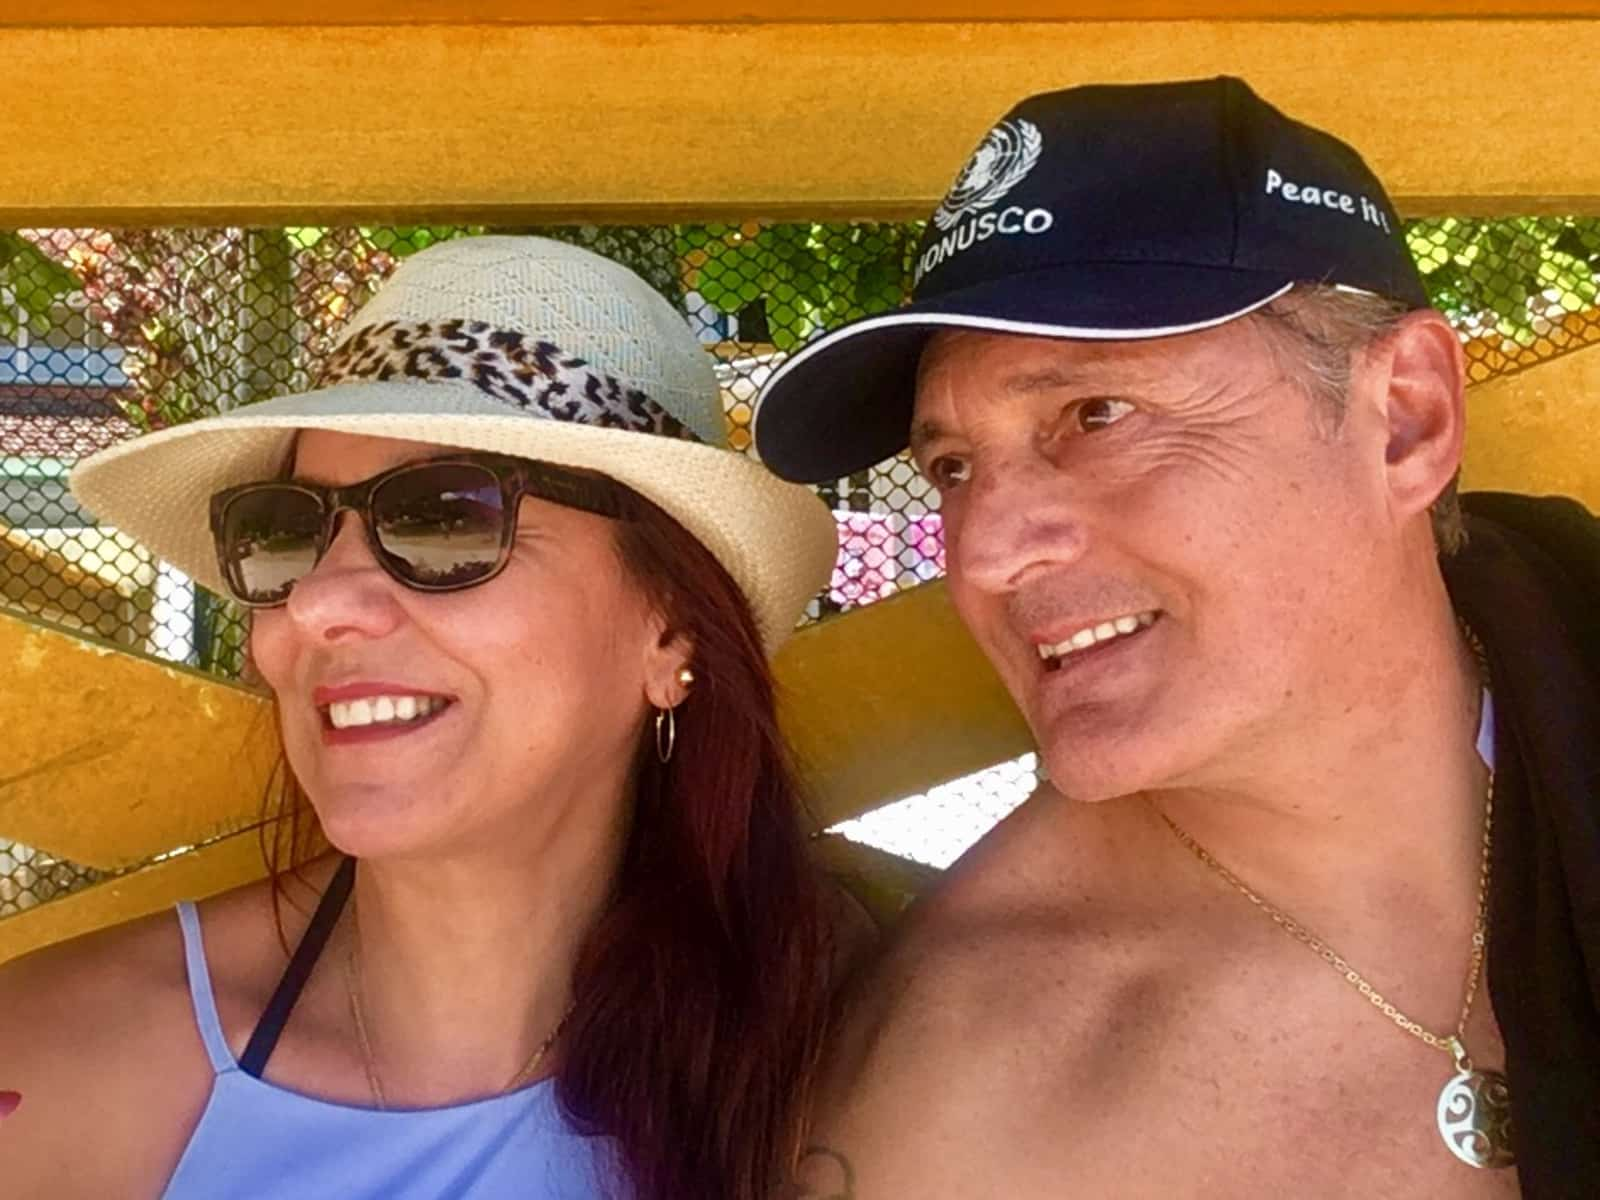 Marietha & Homero from Cape Town, South Africa